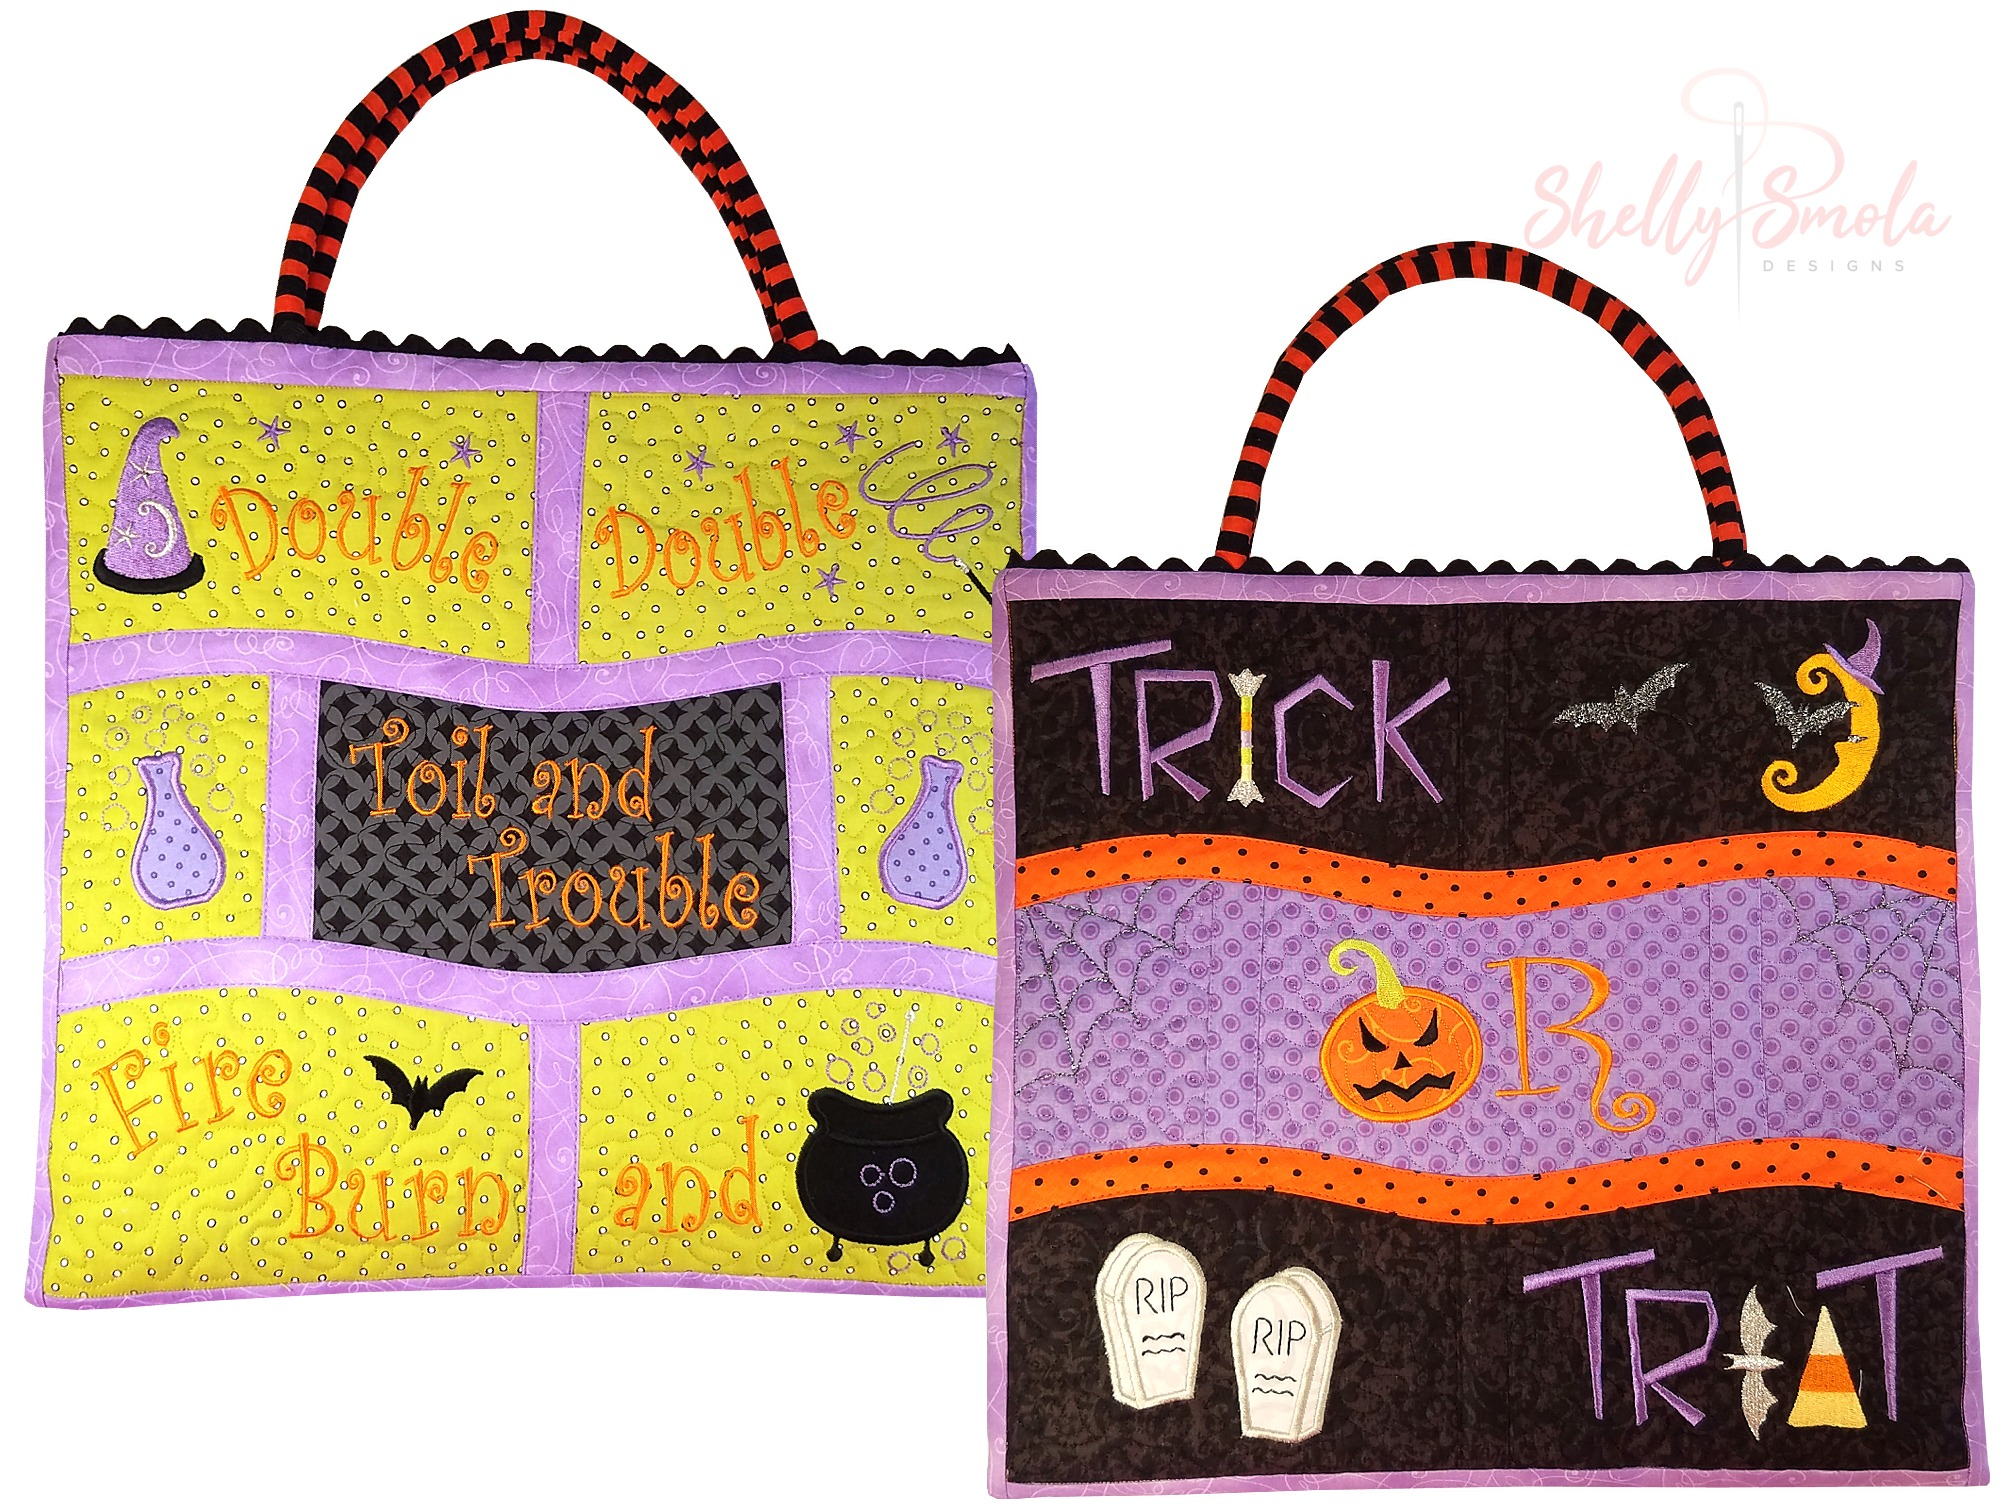 Get Wicked Bags by Shelly Smola